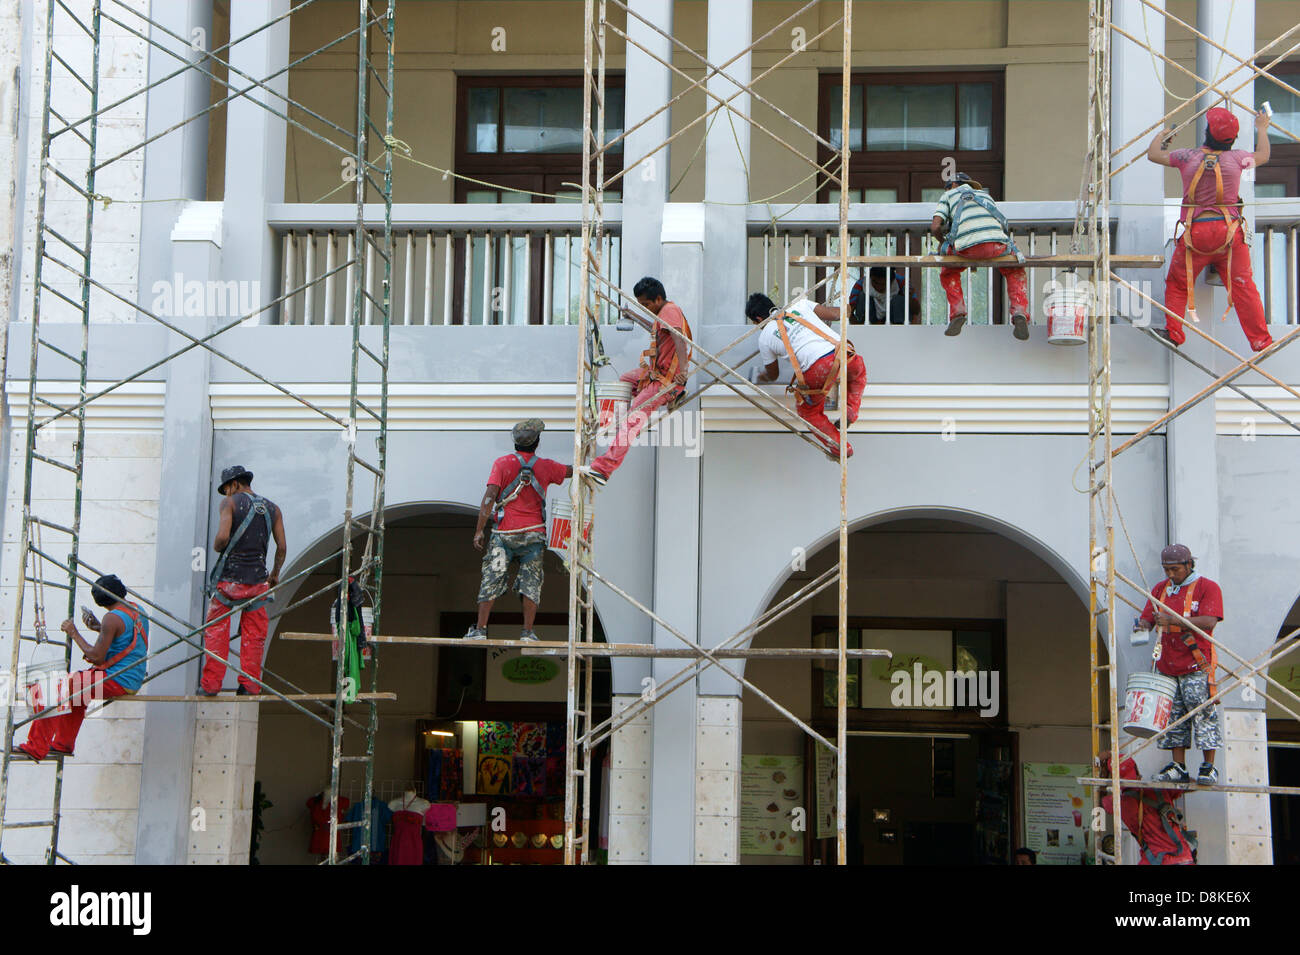 Workers on metal scaffolding painting the facade of a building in Merida, Yucatan, Mexico - Stock Image